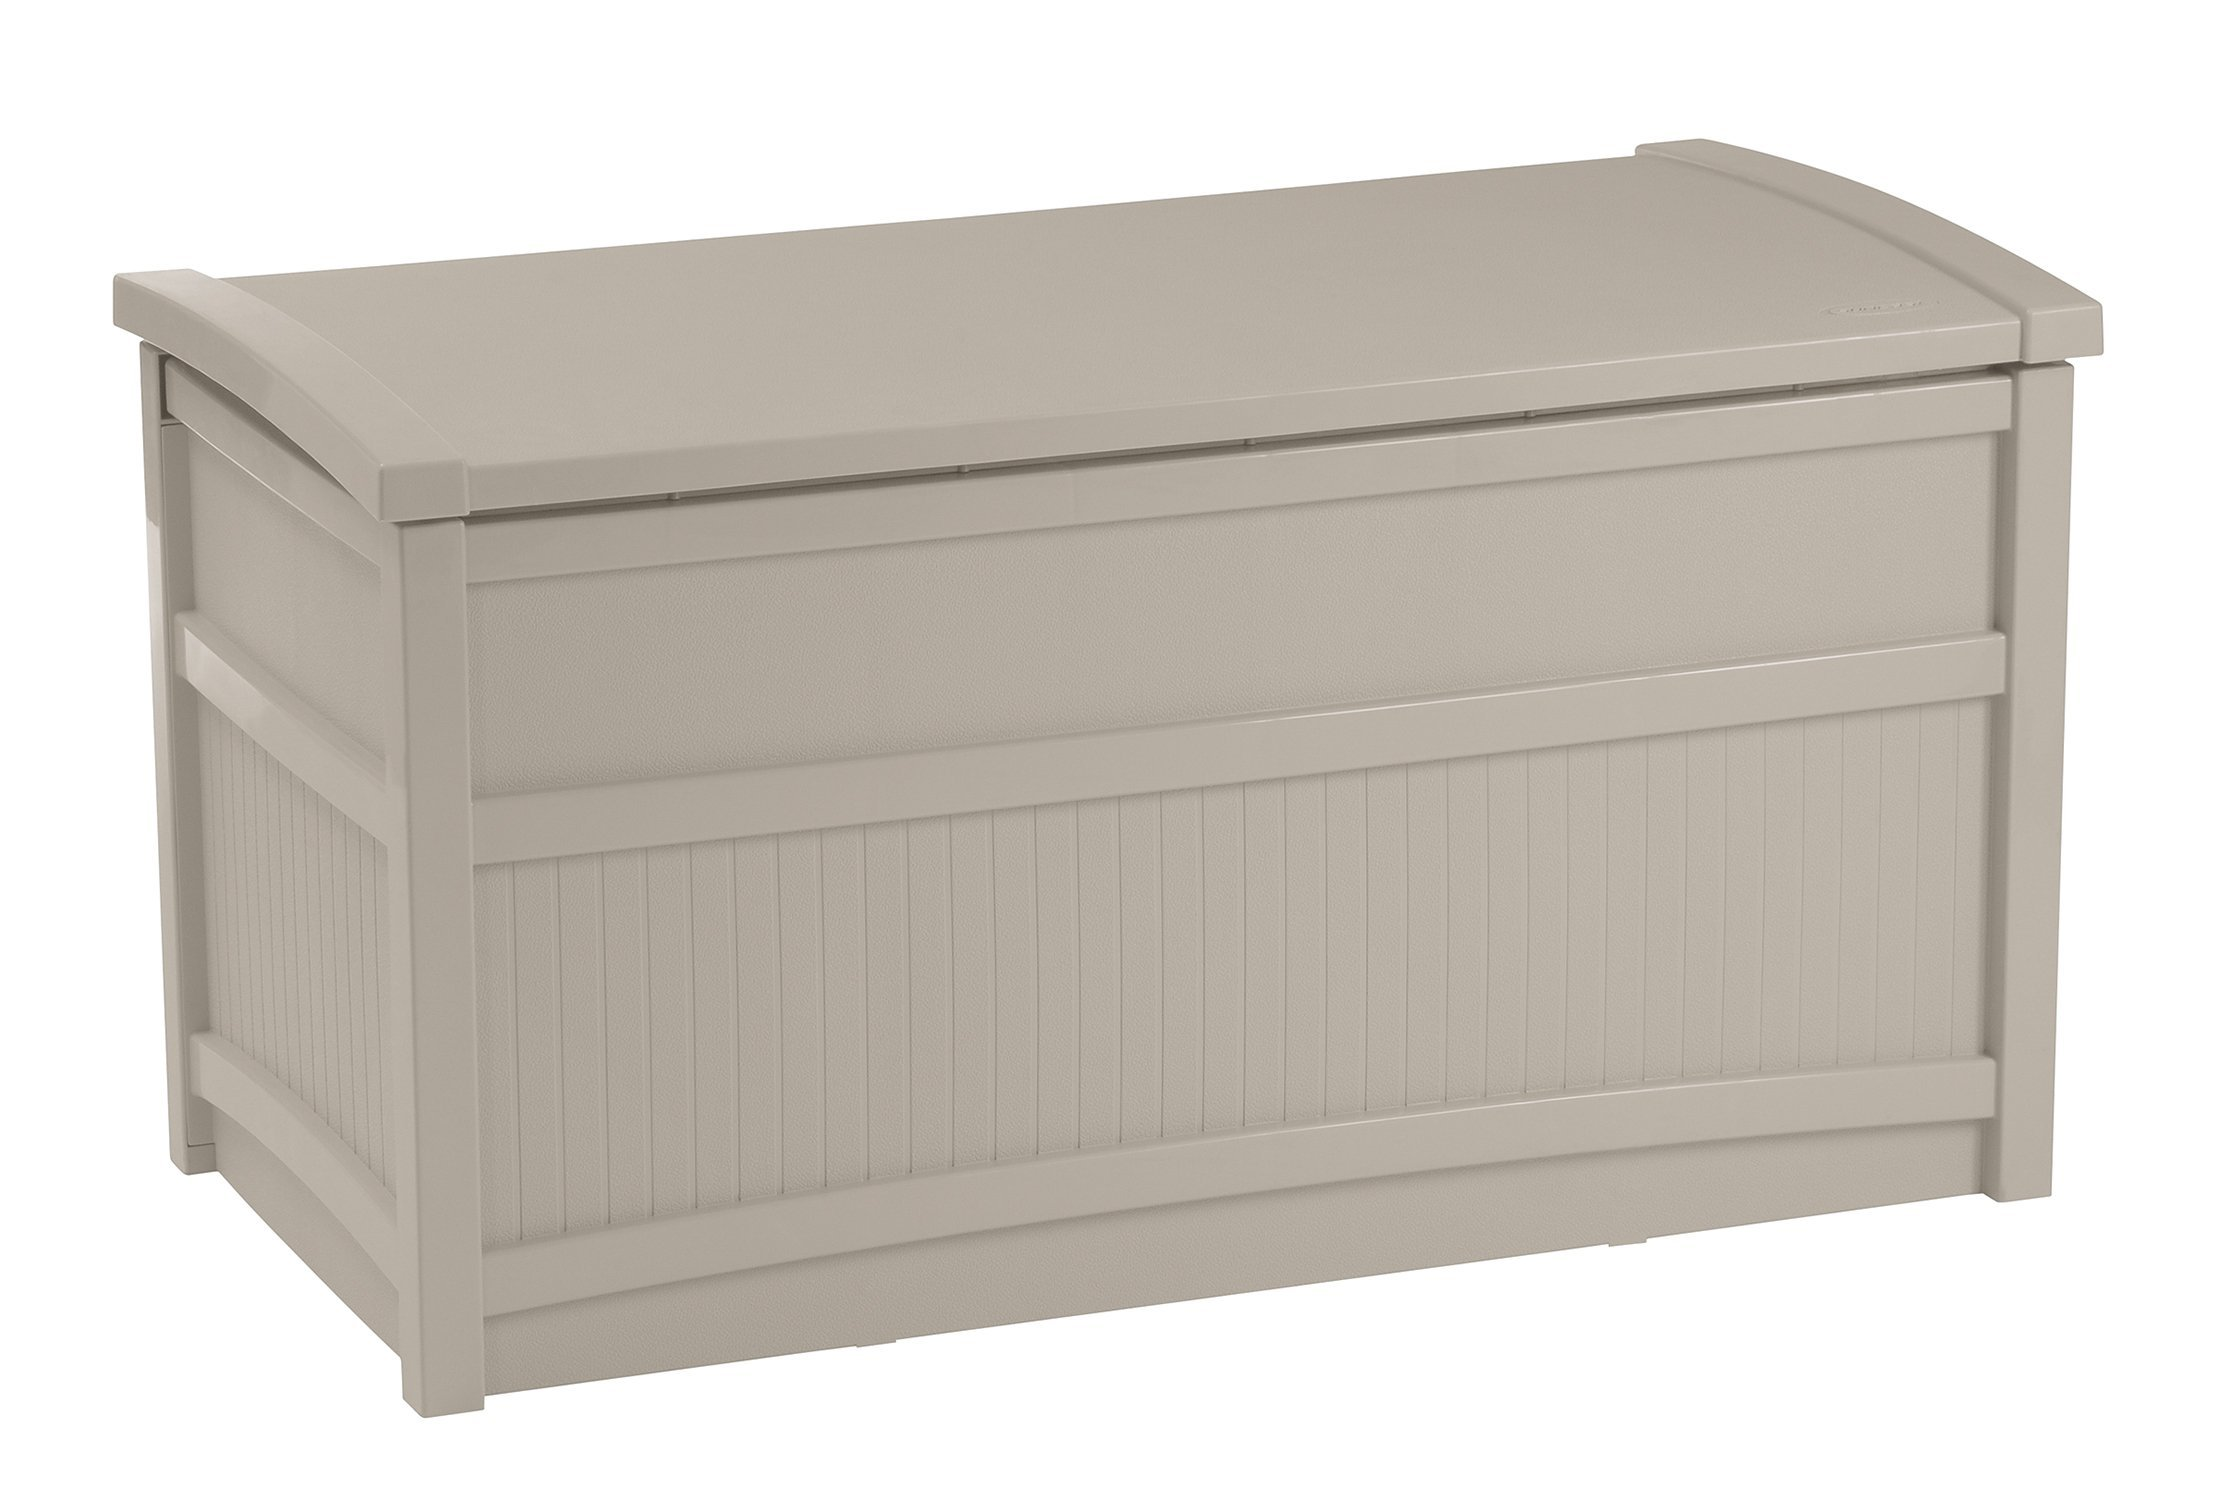 Suncast DB5000 50-Gallon Deck Box